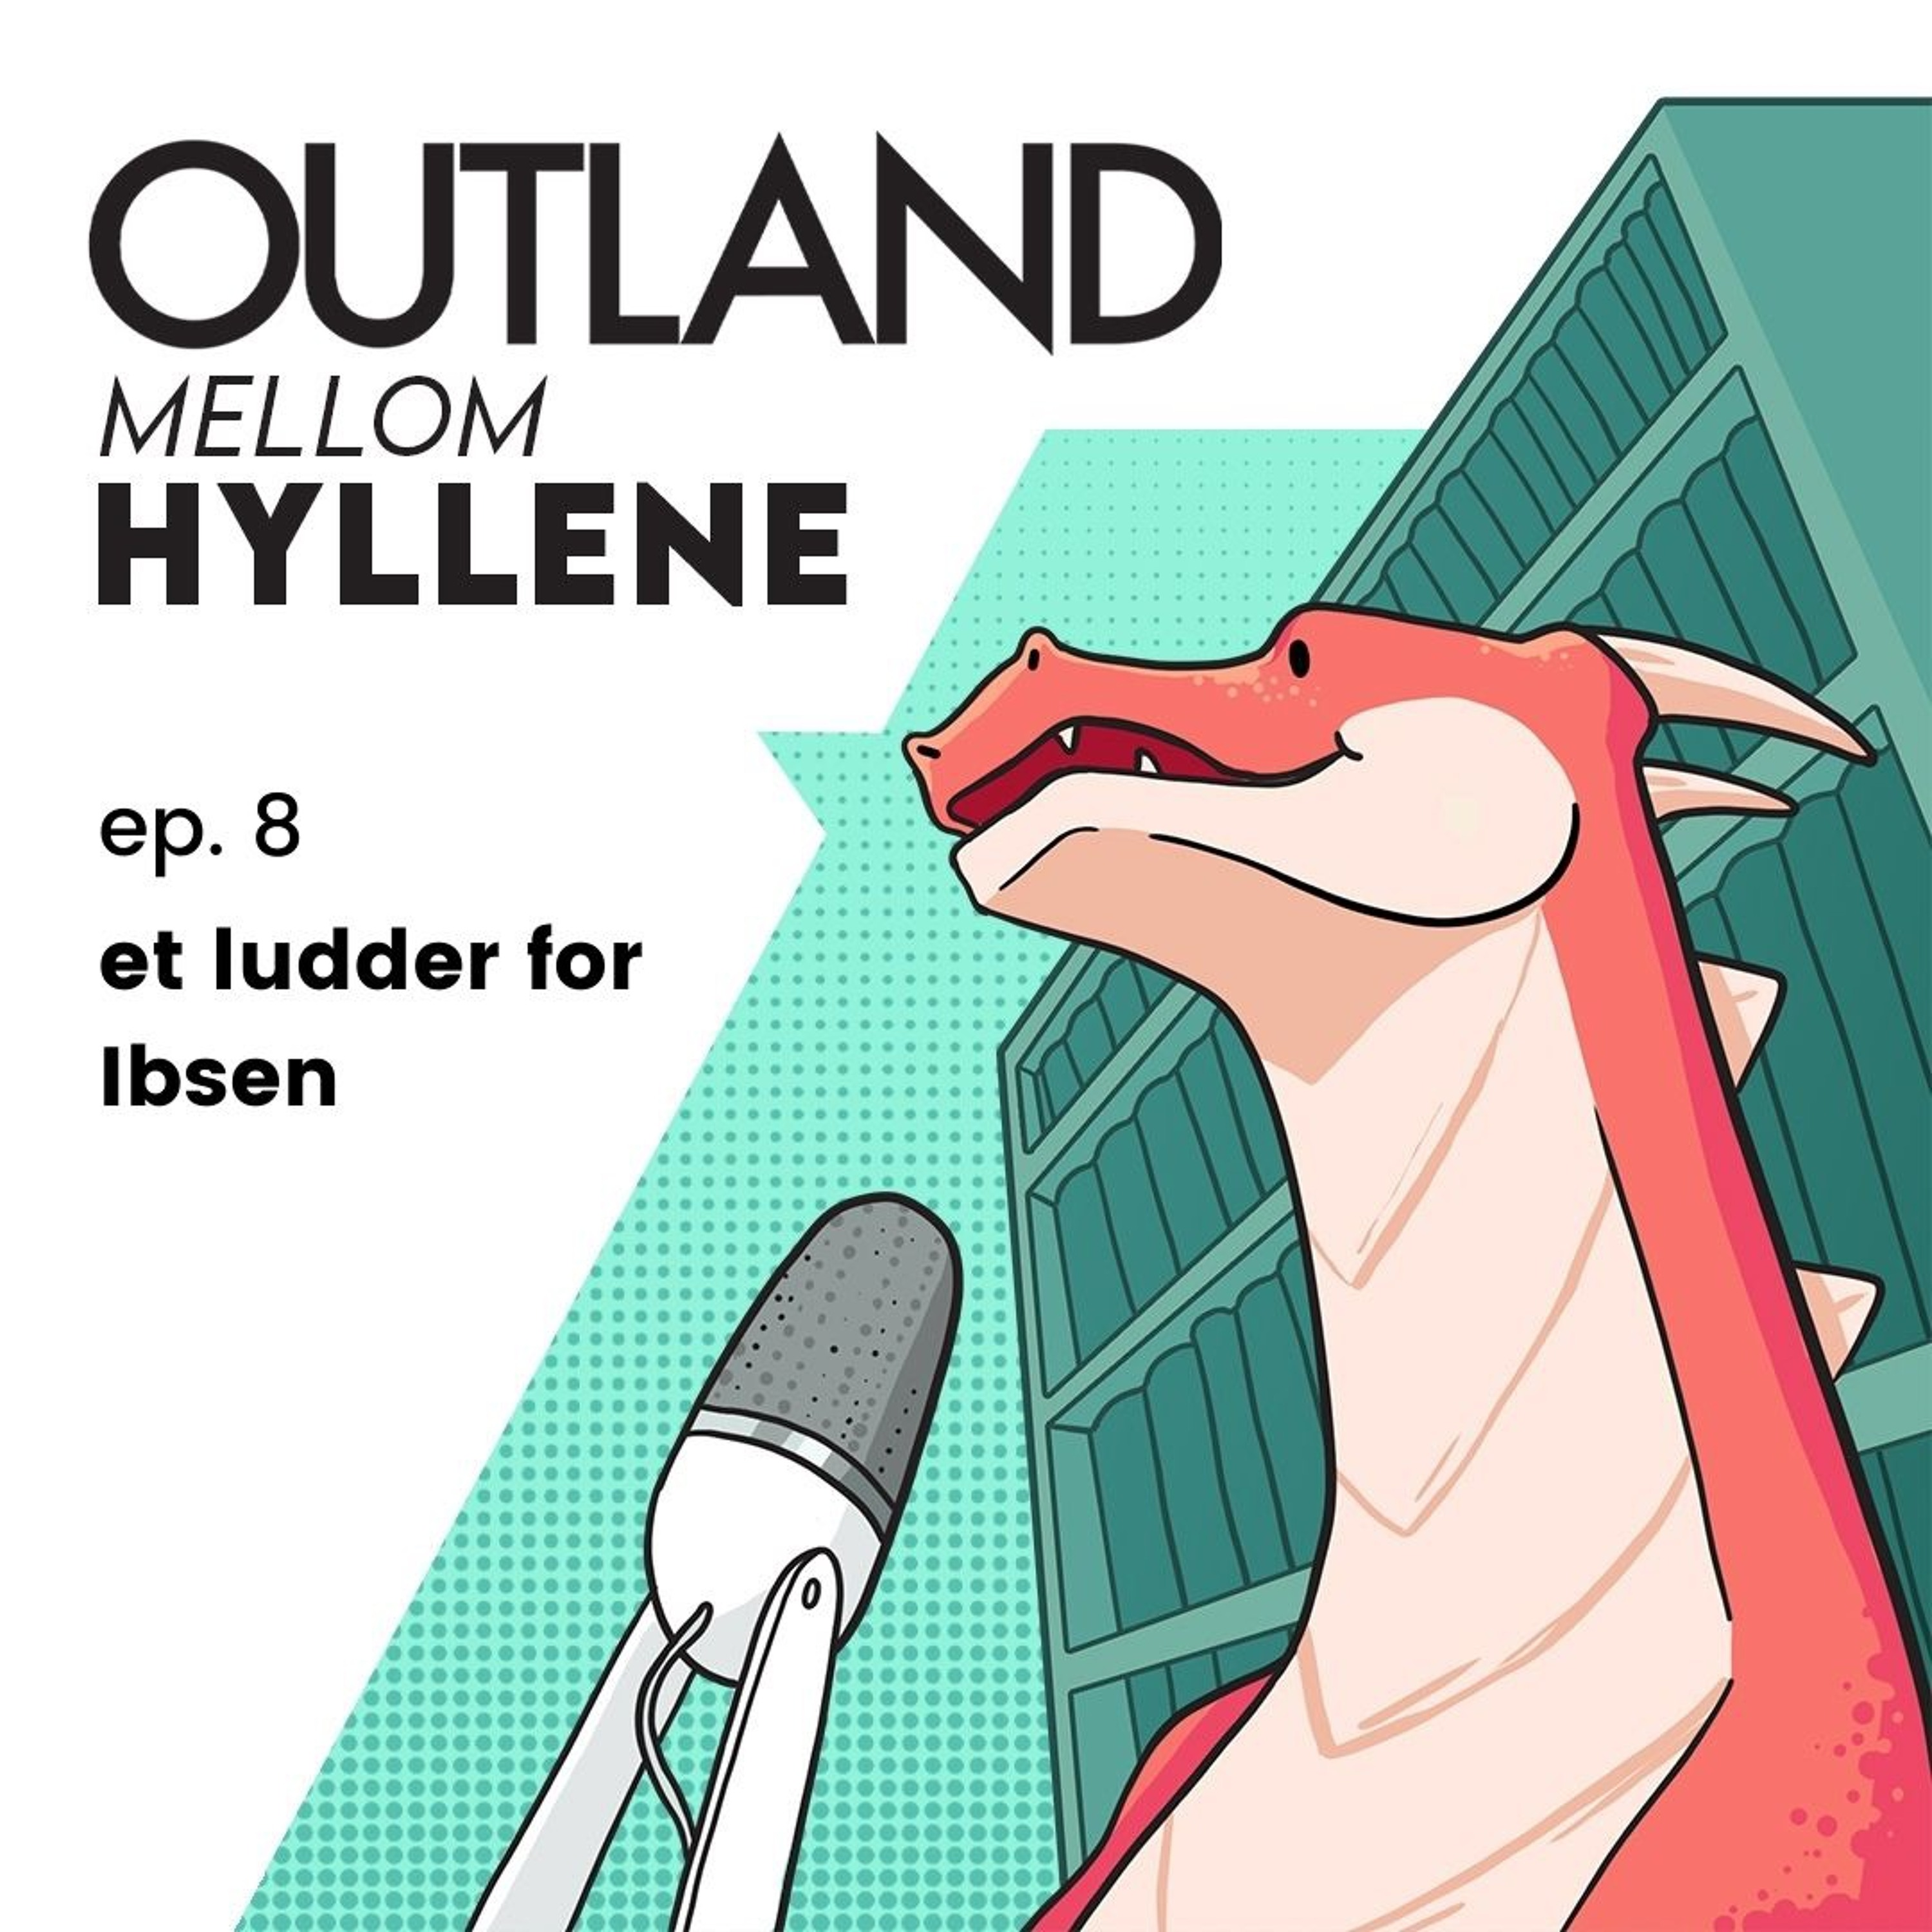 ep 8. et ludder for Ibsen